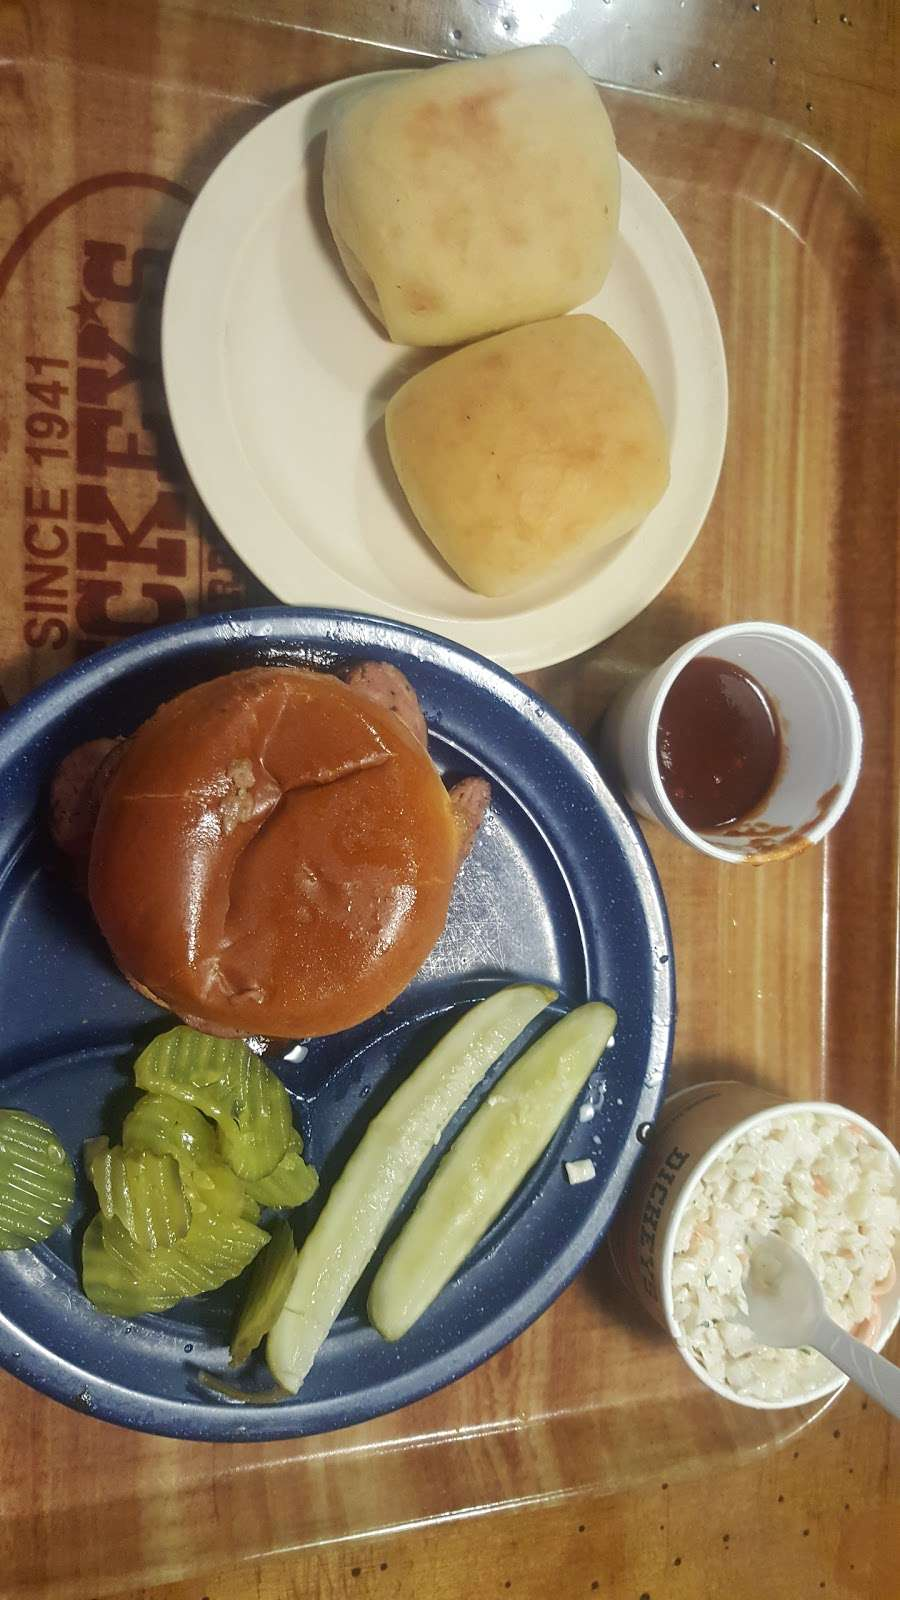 Dickeys Barbecue Pit - meal delivery    Photo 7 of 9   Address: 3220 E Hebron Pkwy, Carrollton, TX 75010, USA   Phone: (972) 307-1100